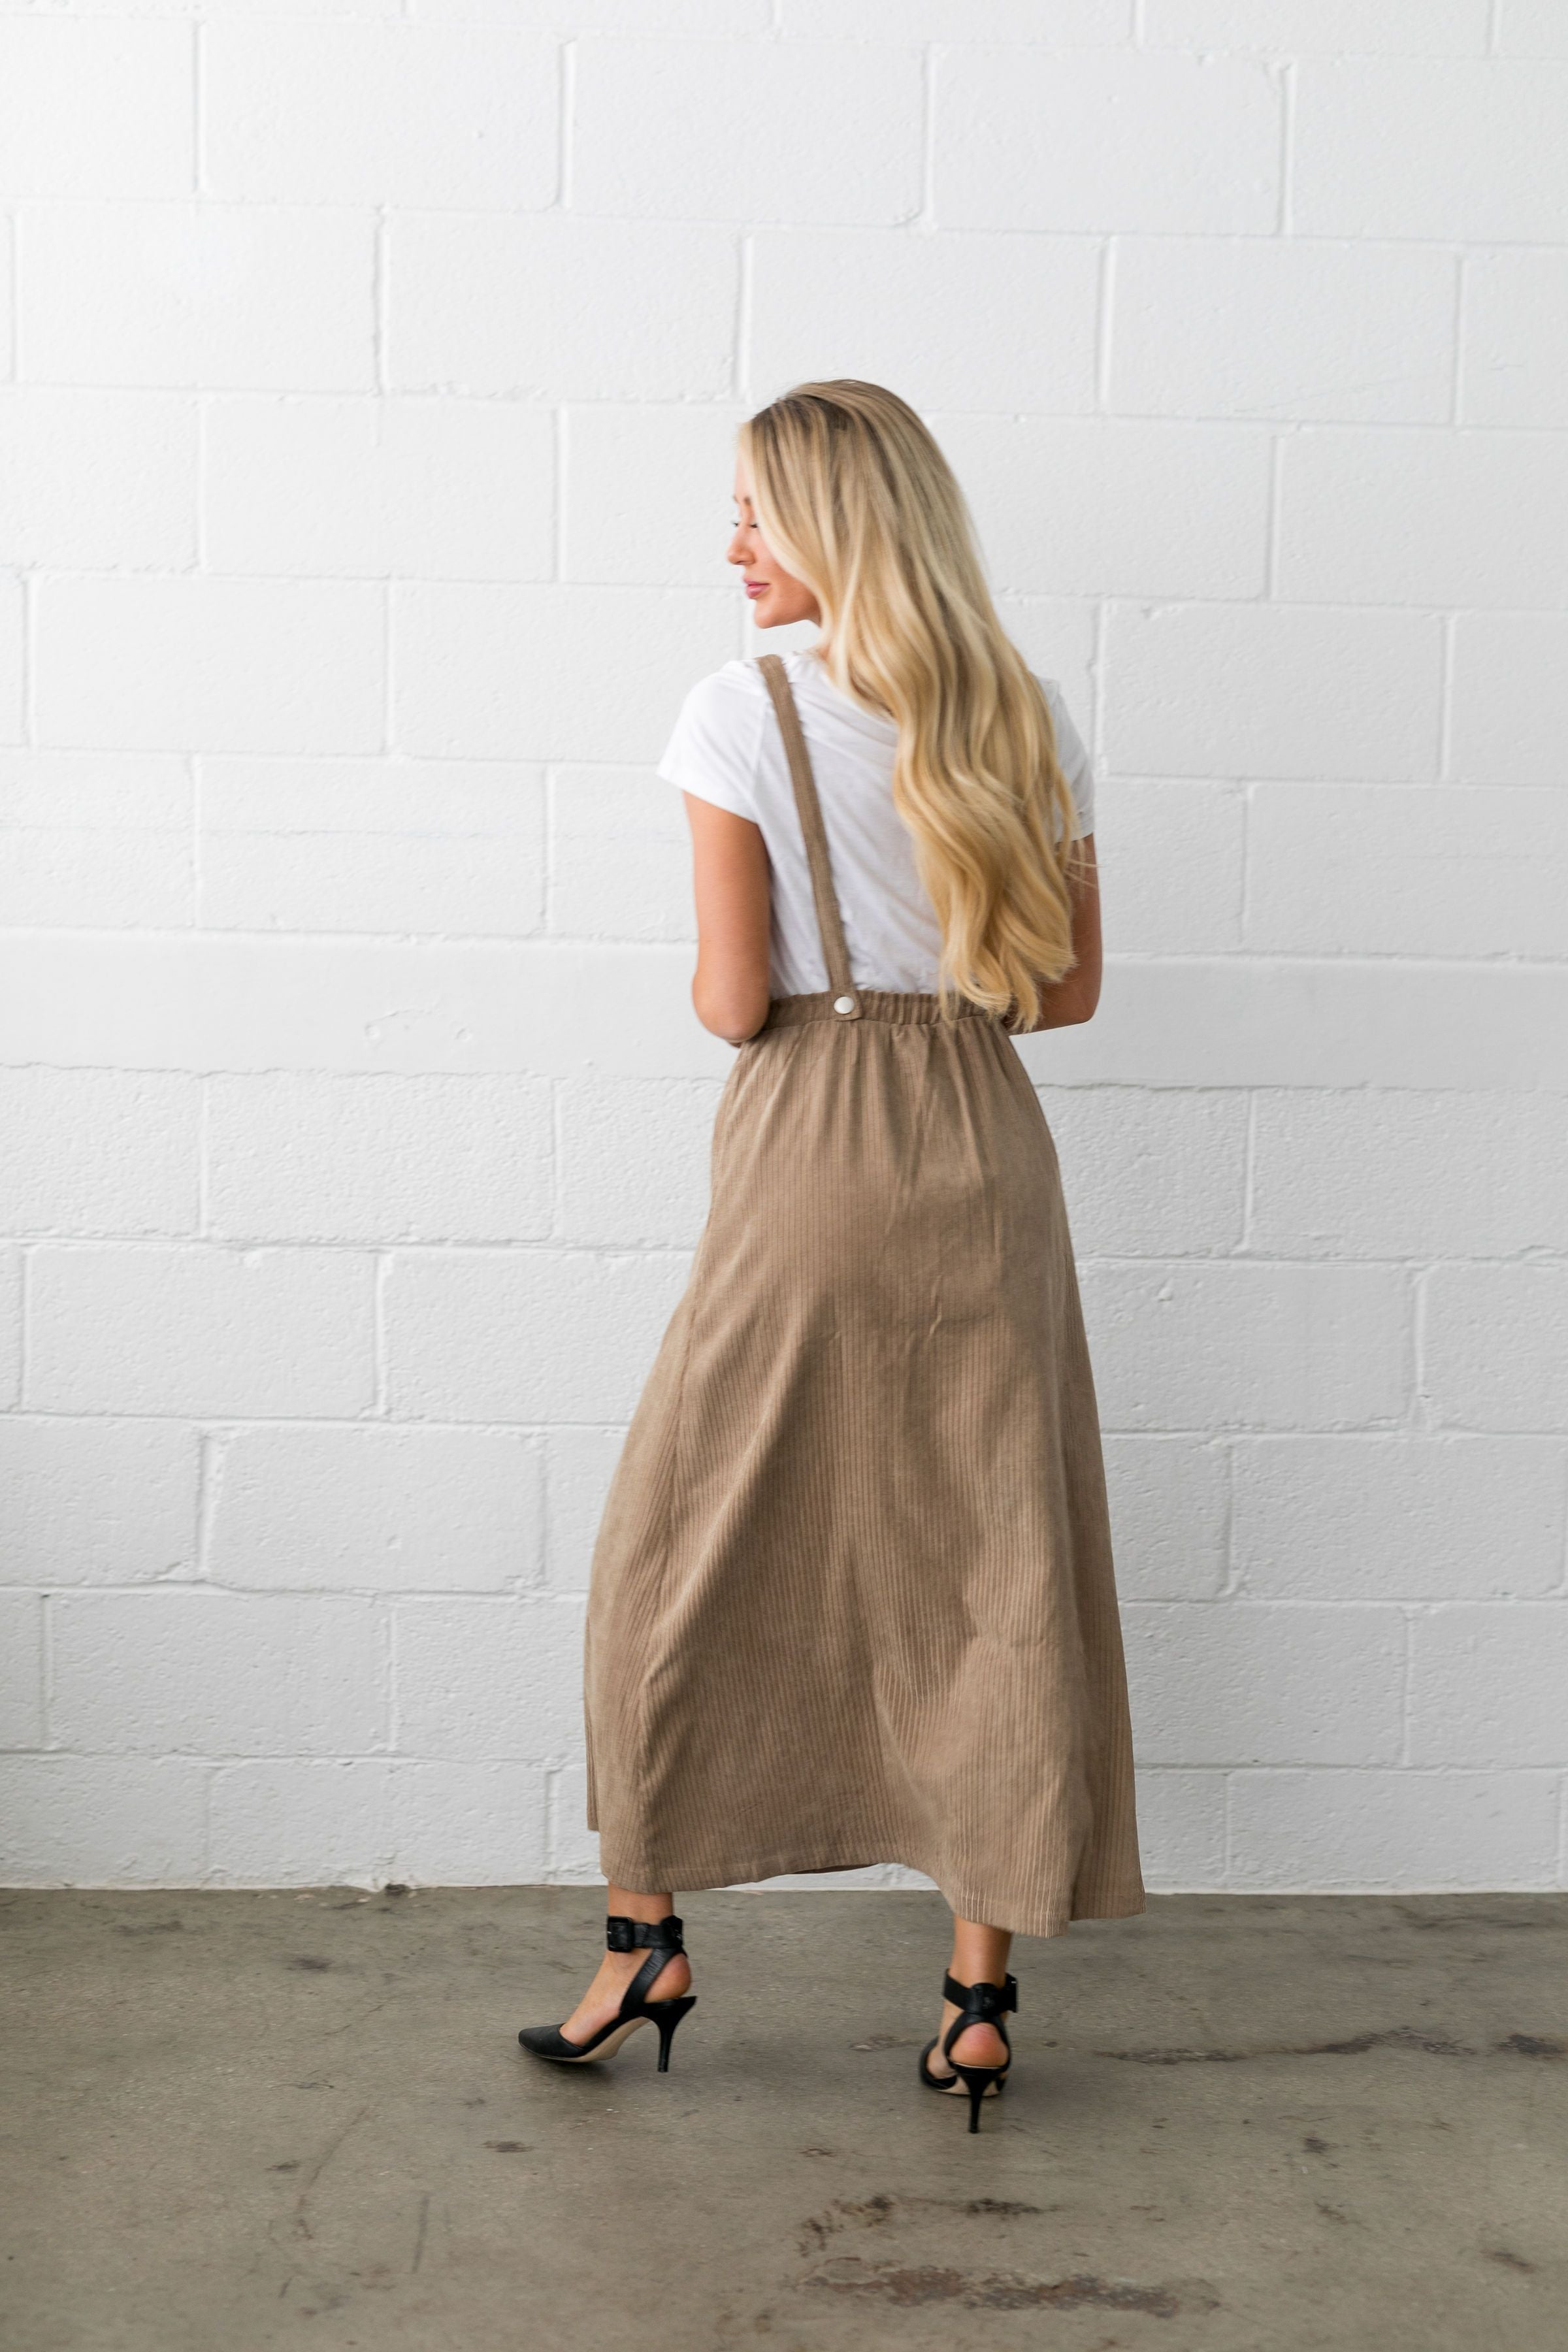 The Suspense Is Killing Me Skirt - ALL SALES FINAL